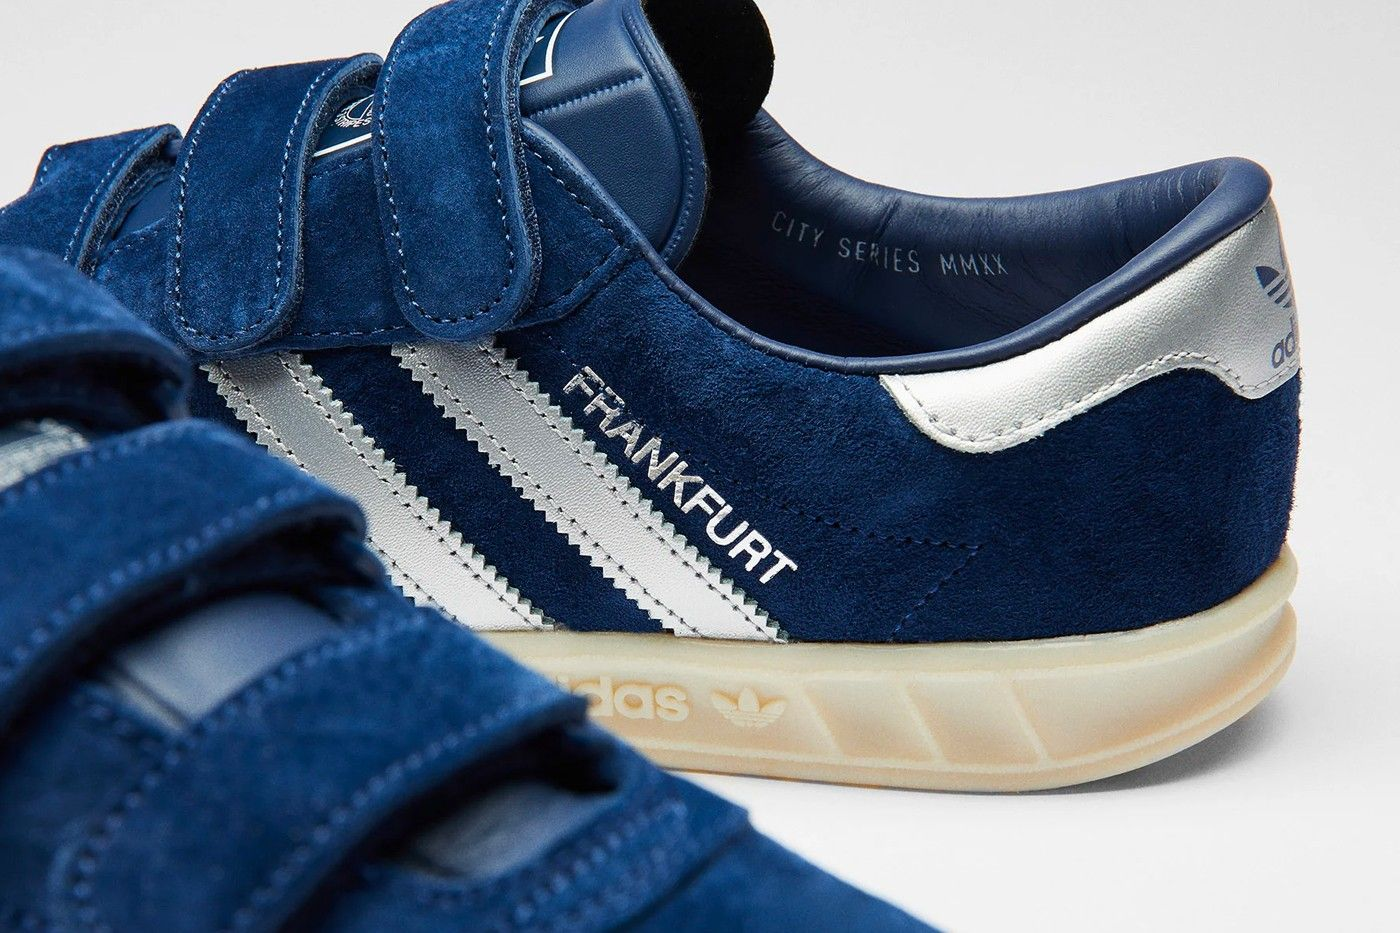 adidas Frankfurt City Series Heel